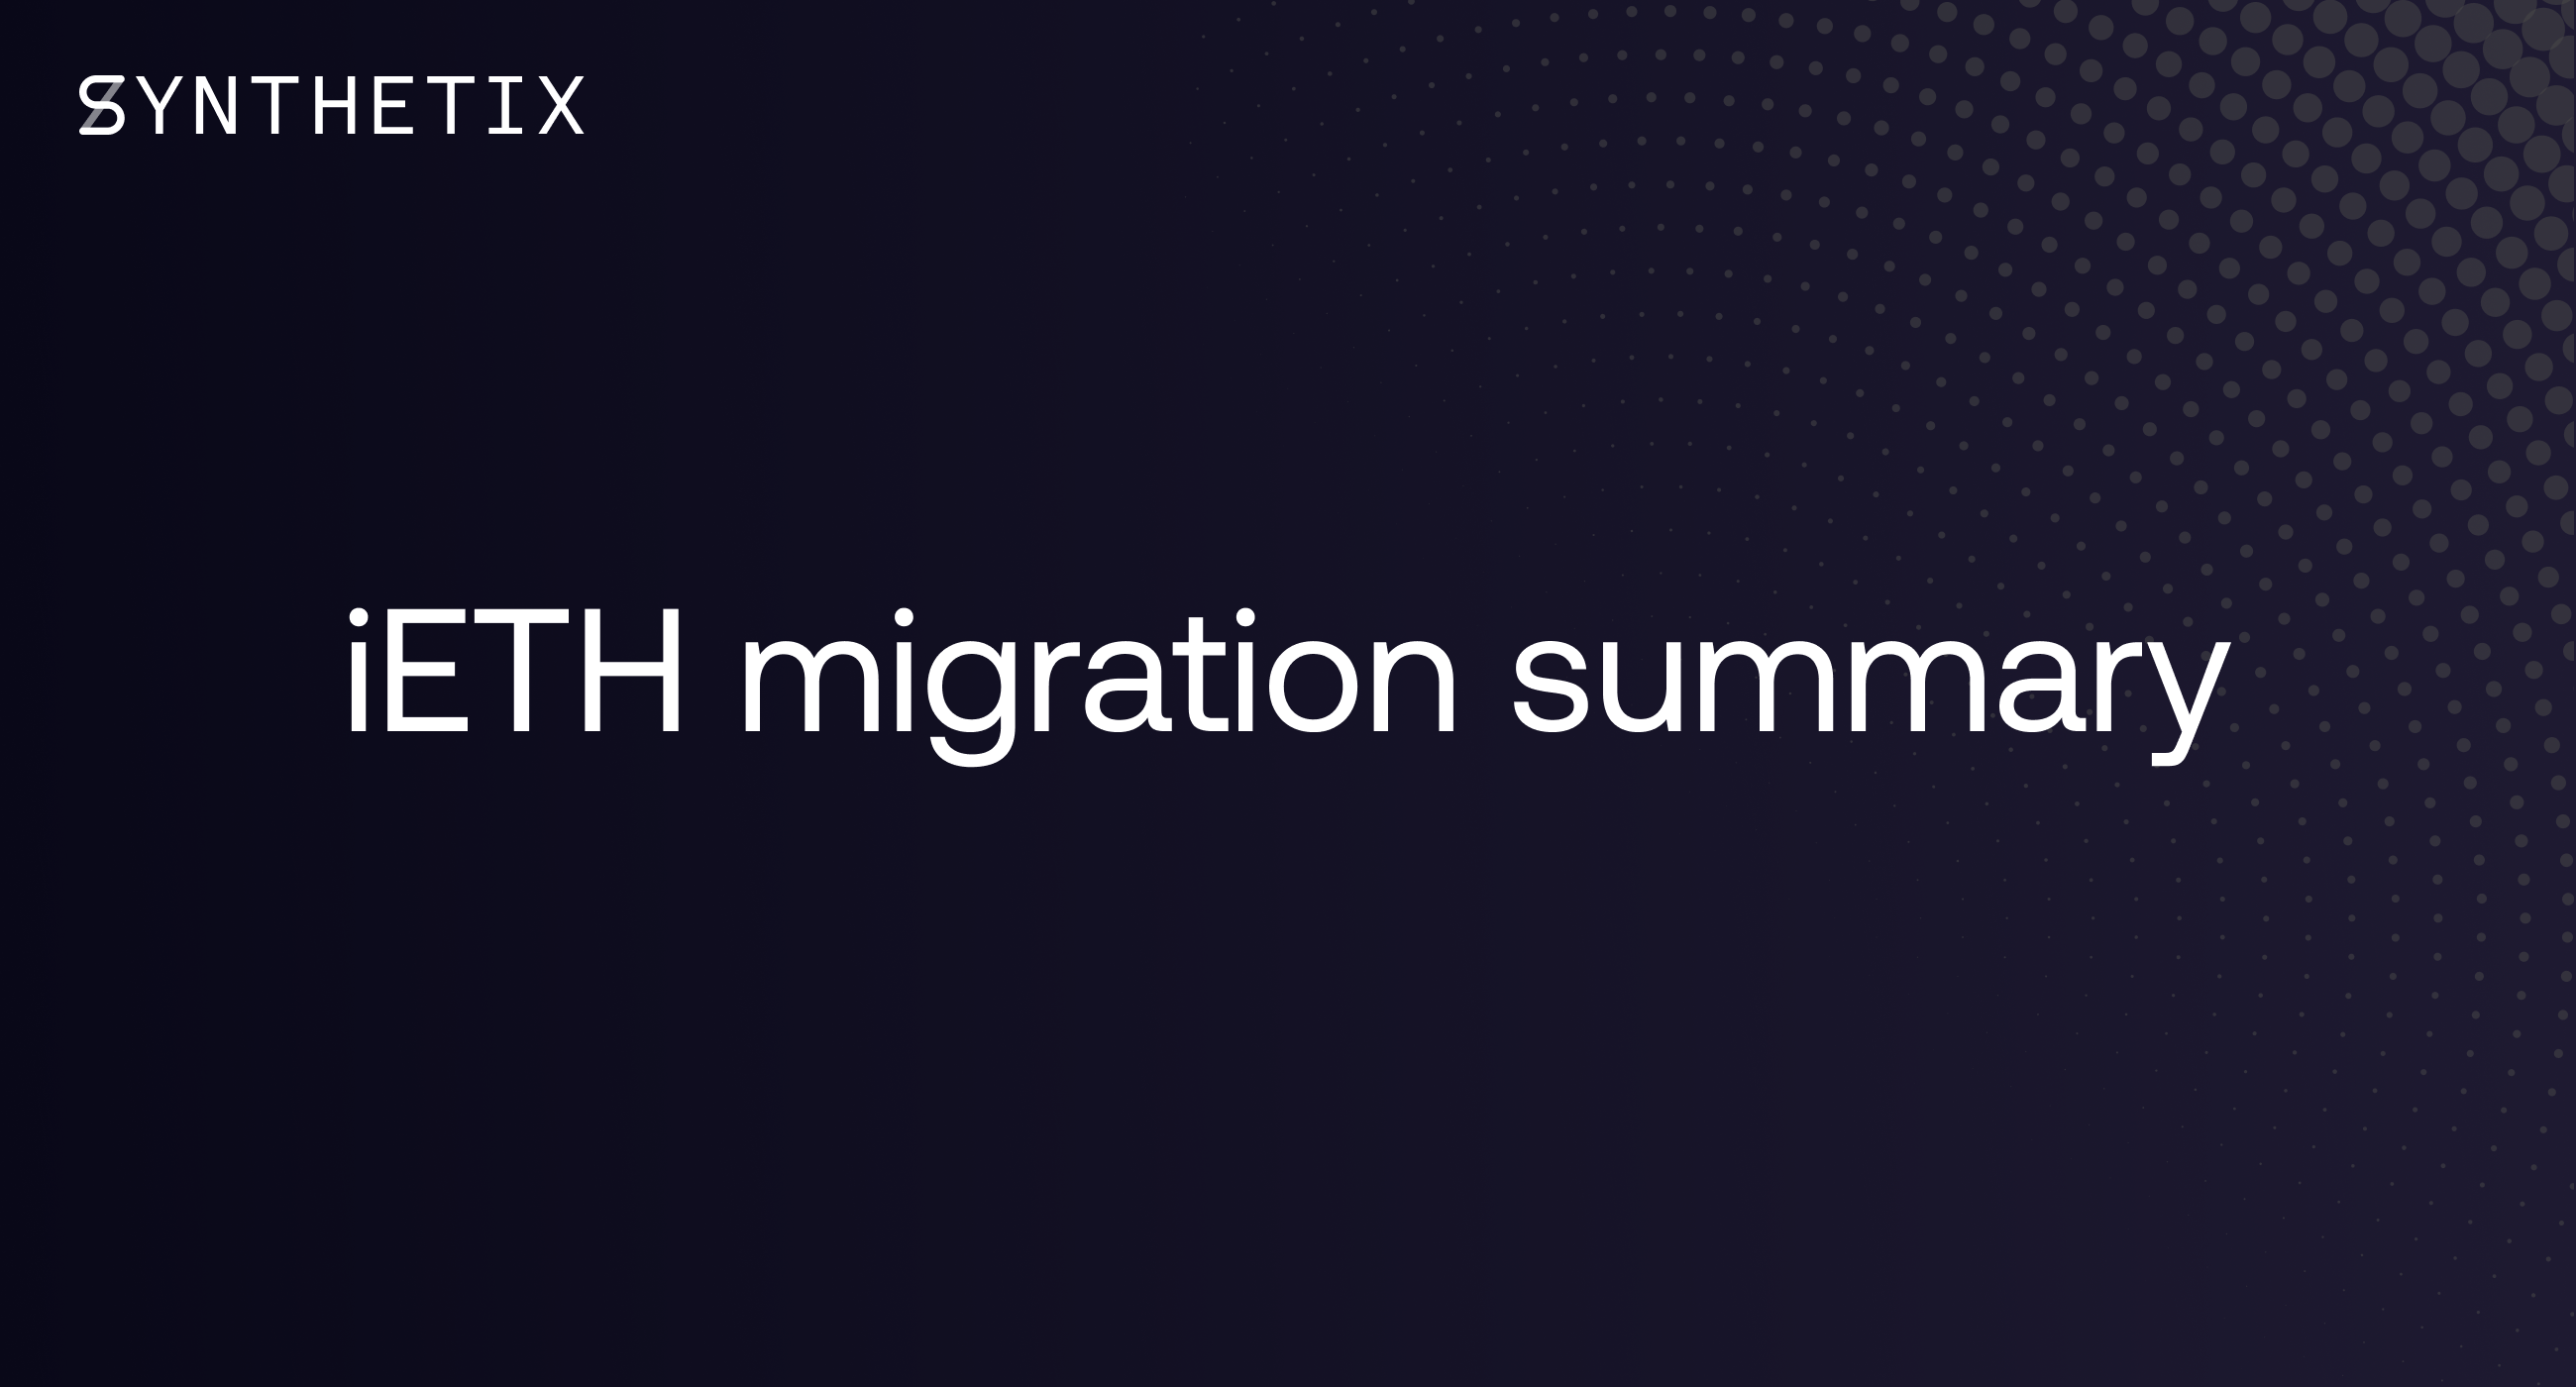 iETH migration summary